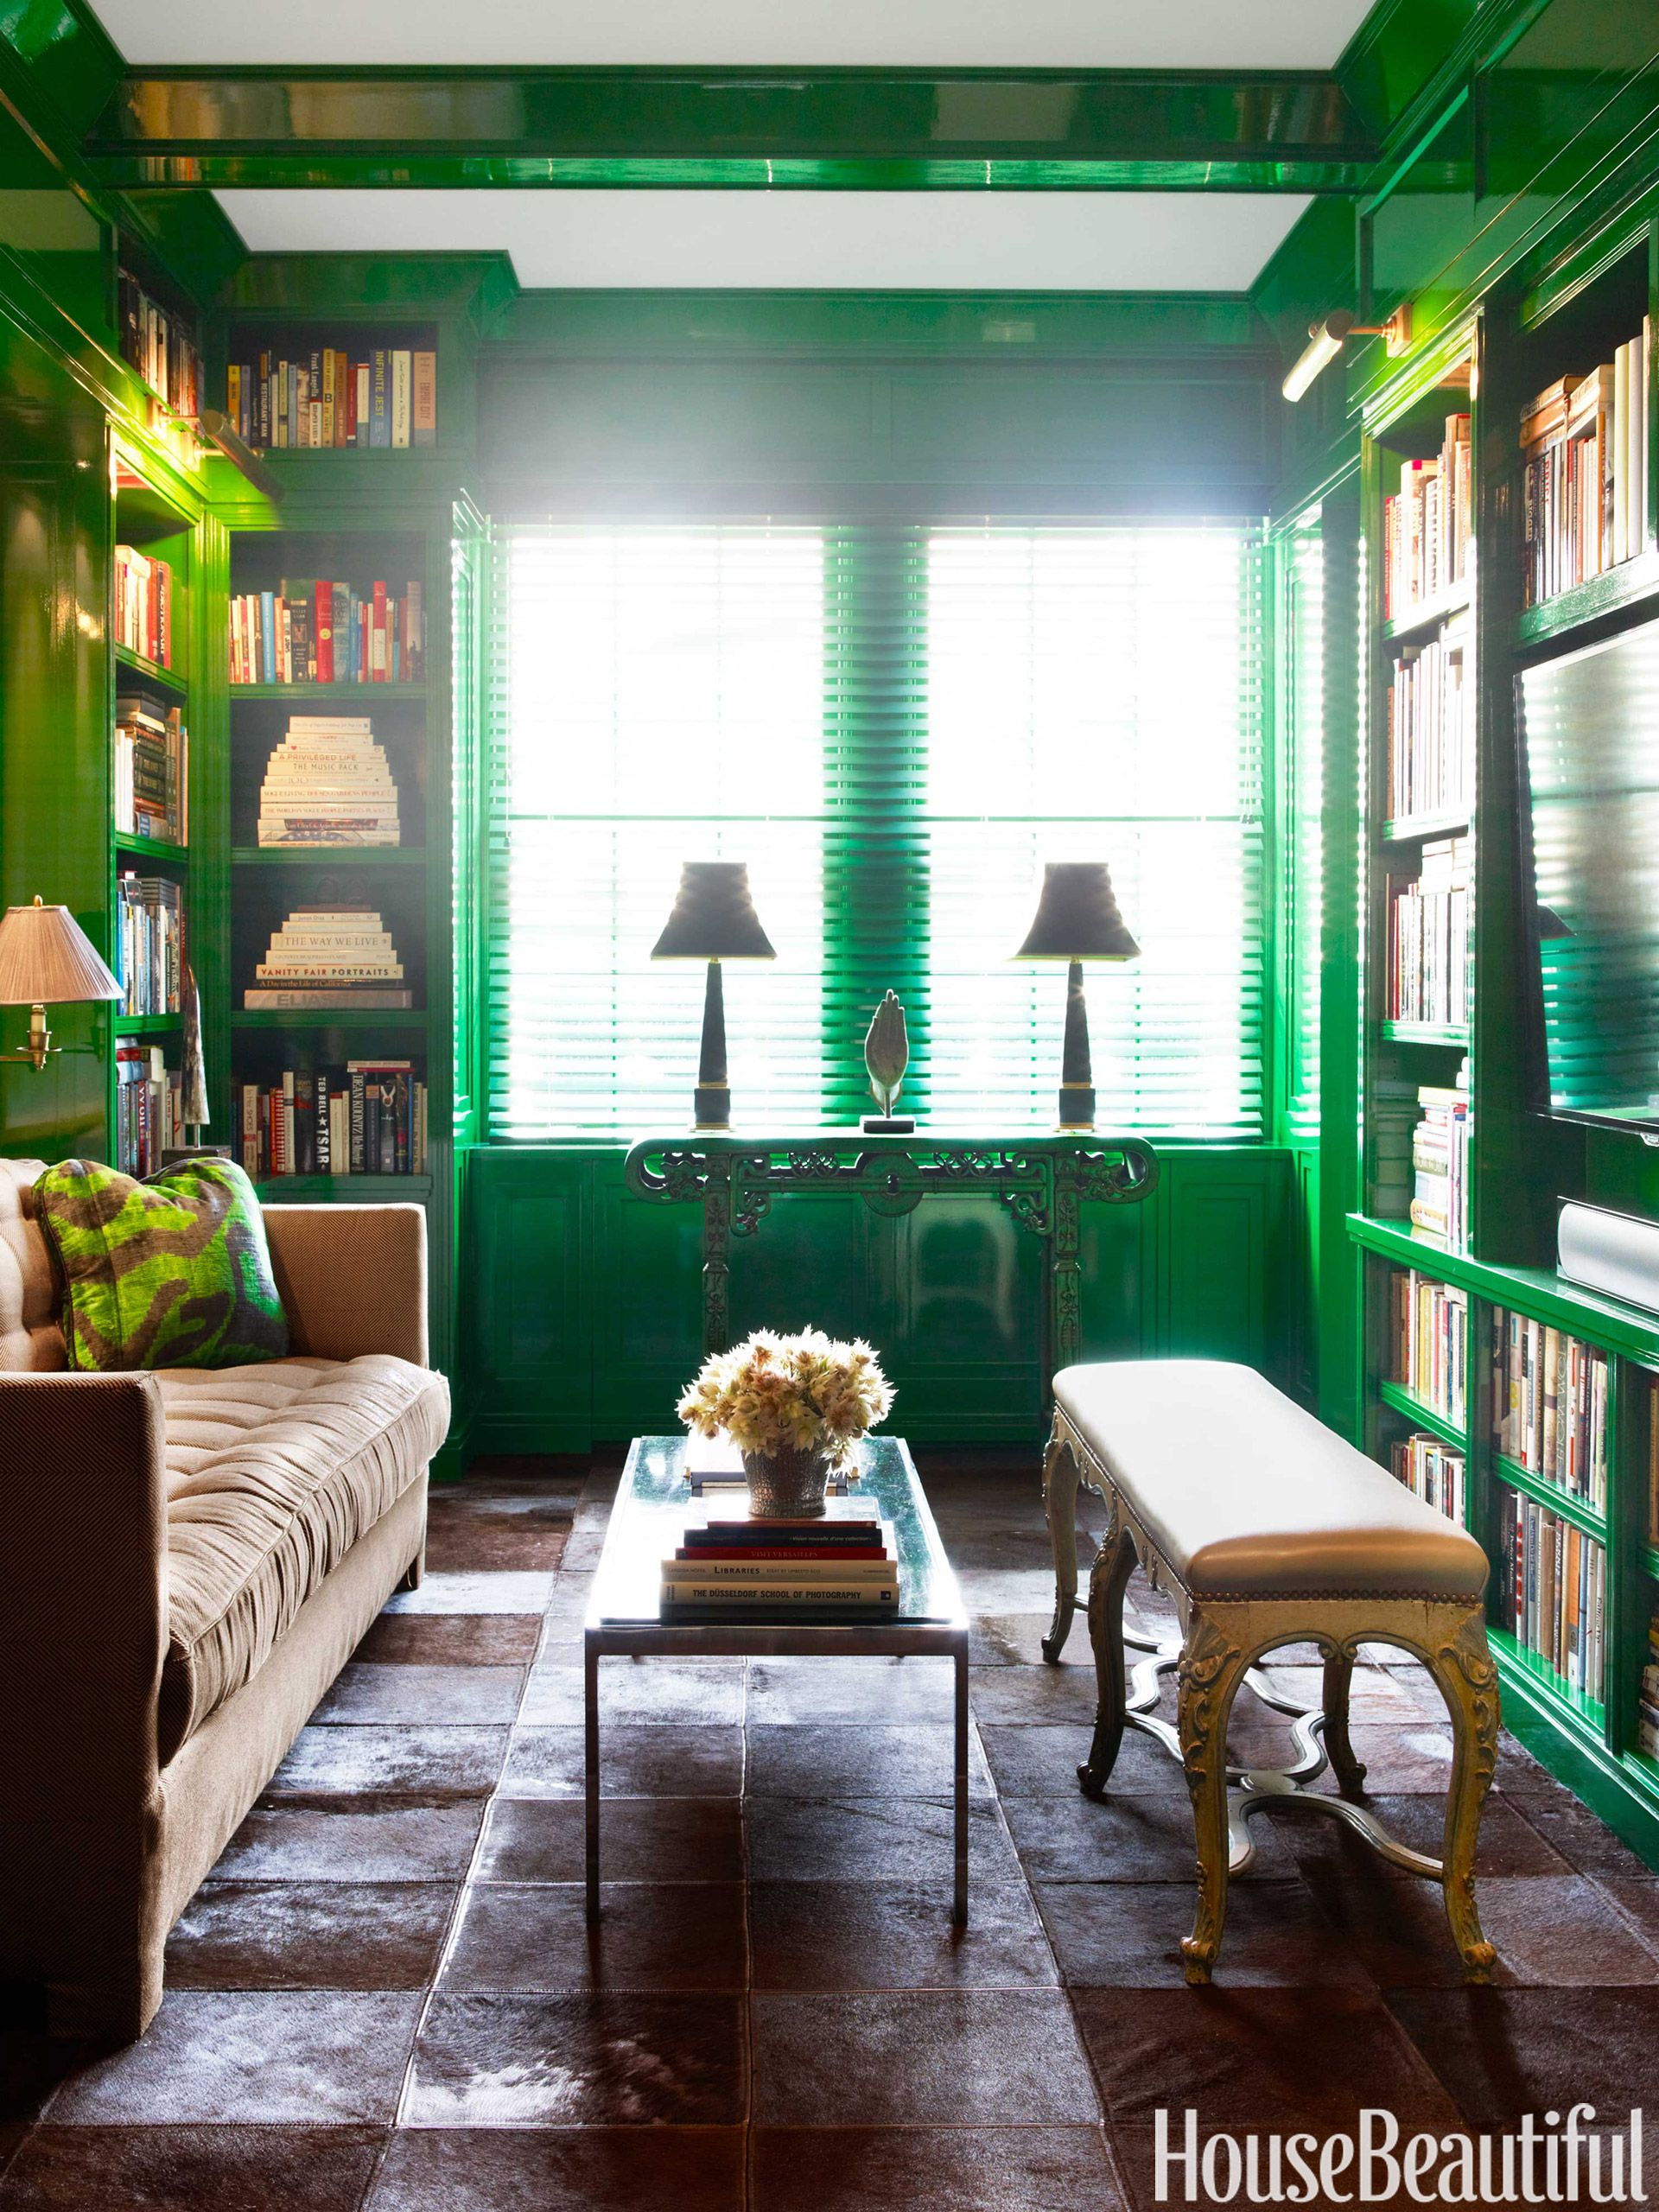 Living Room Library Design Ideas: Inside A Happy Family Home With Vivid Colors